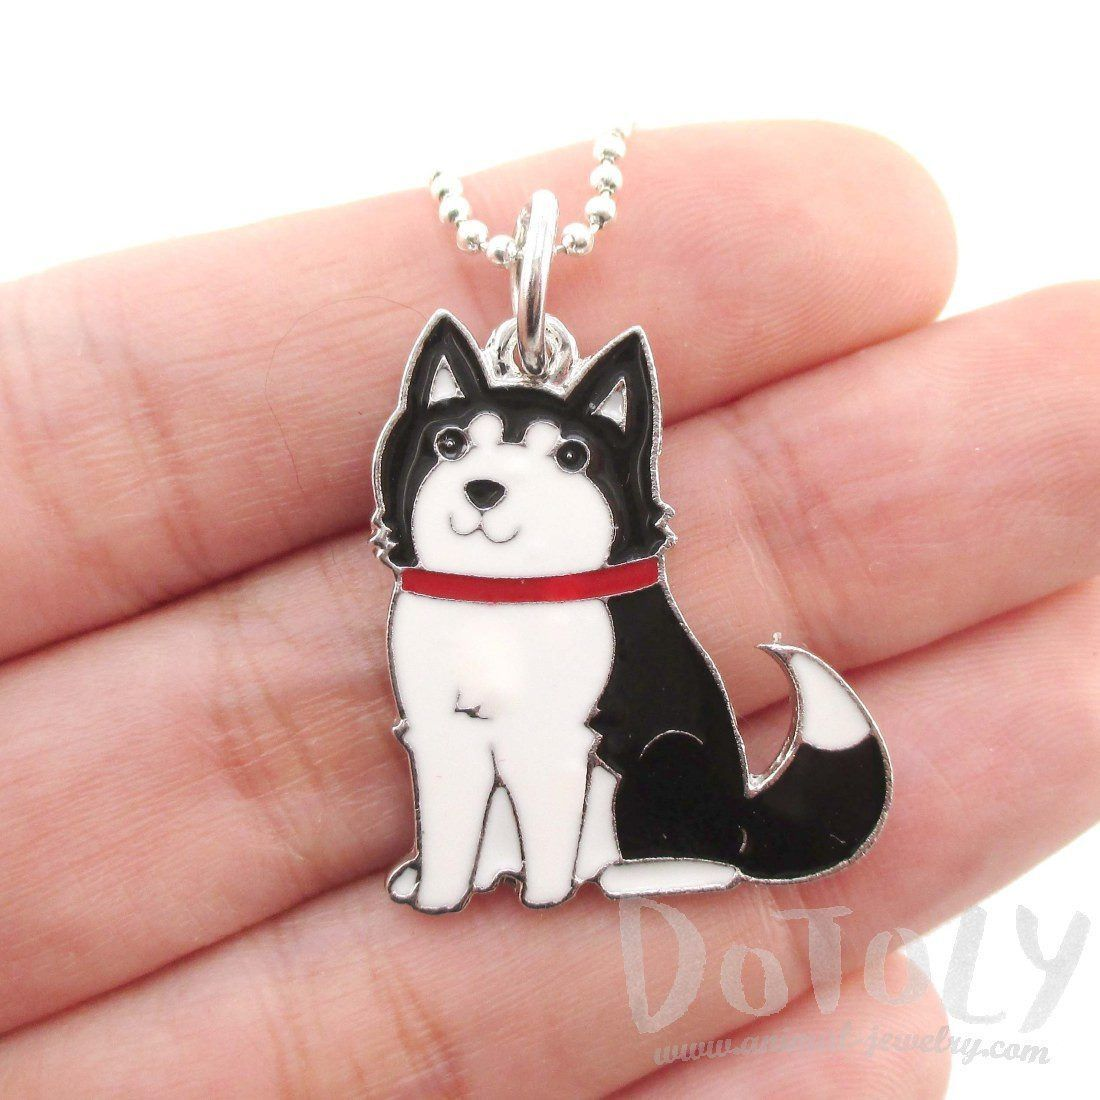 Adorable puppy dog shaped animal pendant necklace in black and white